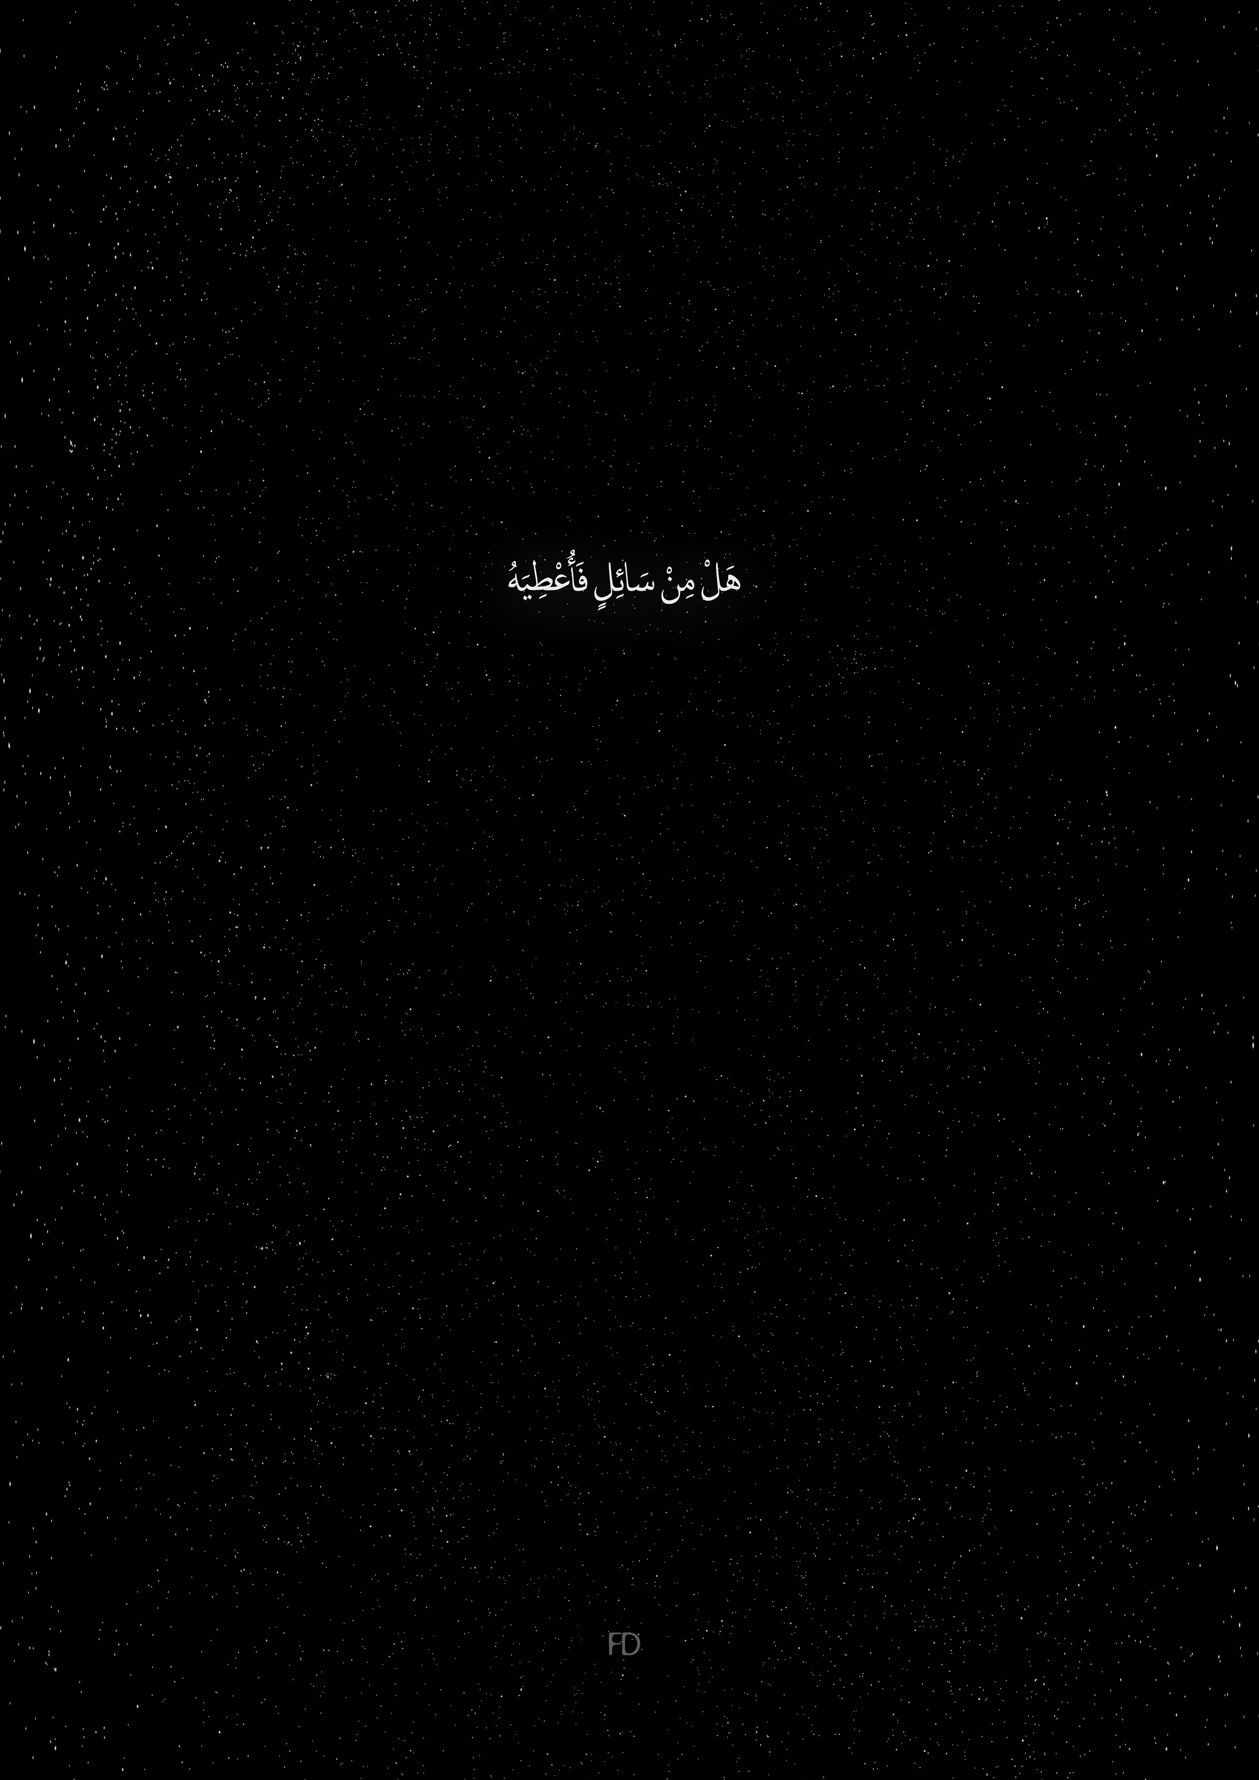 Pin By Nc On عربي Cover Photo Quotes Arabic Quotes Quran Quotes Verses